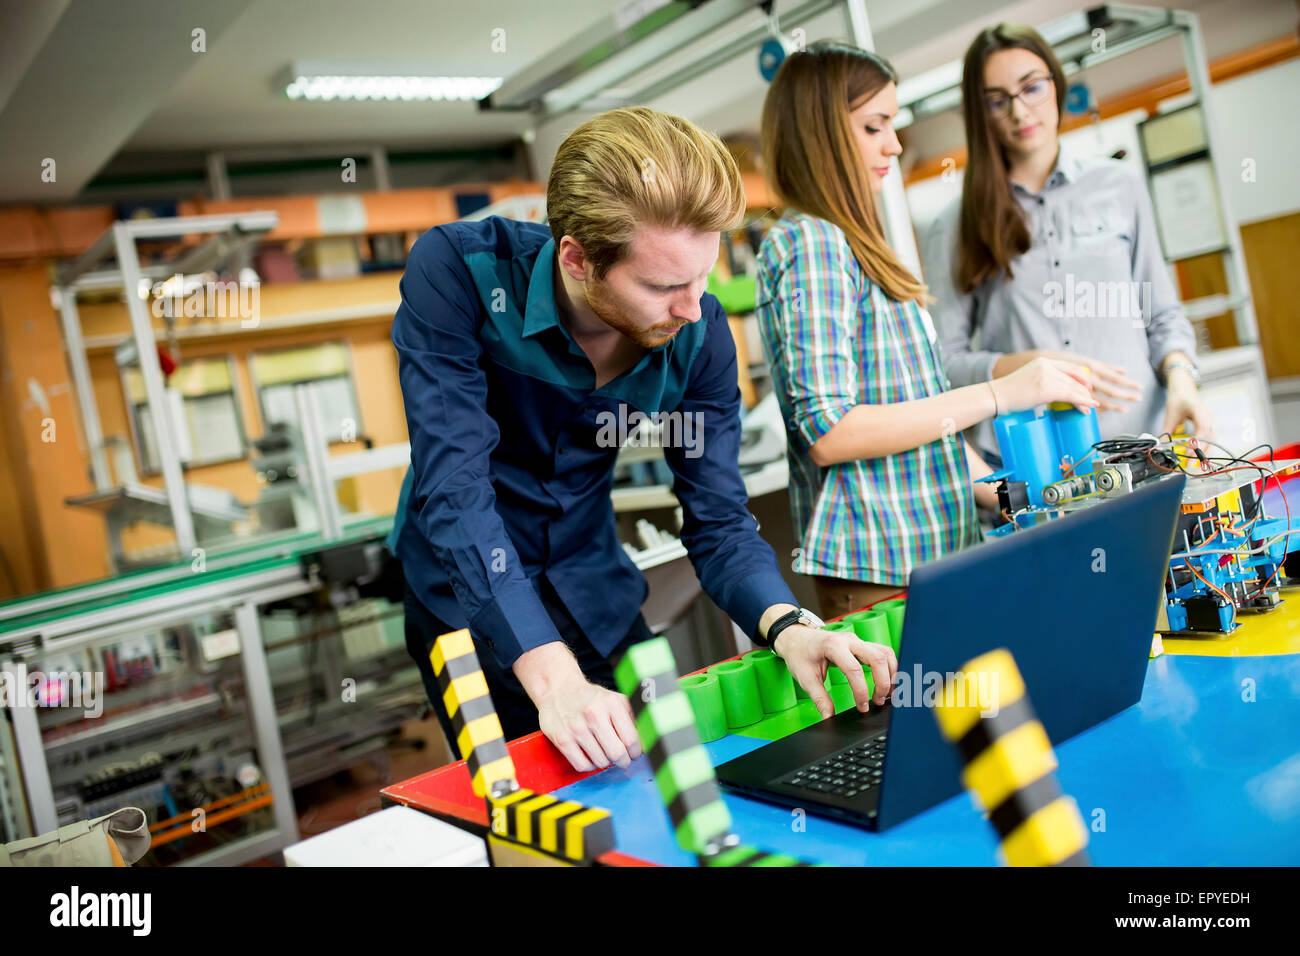 Young People In The Robotics Classroom Stock Photo 82967965 Alamy